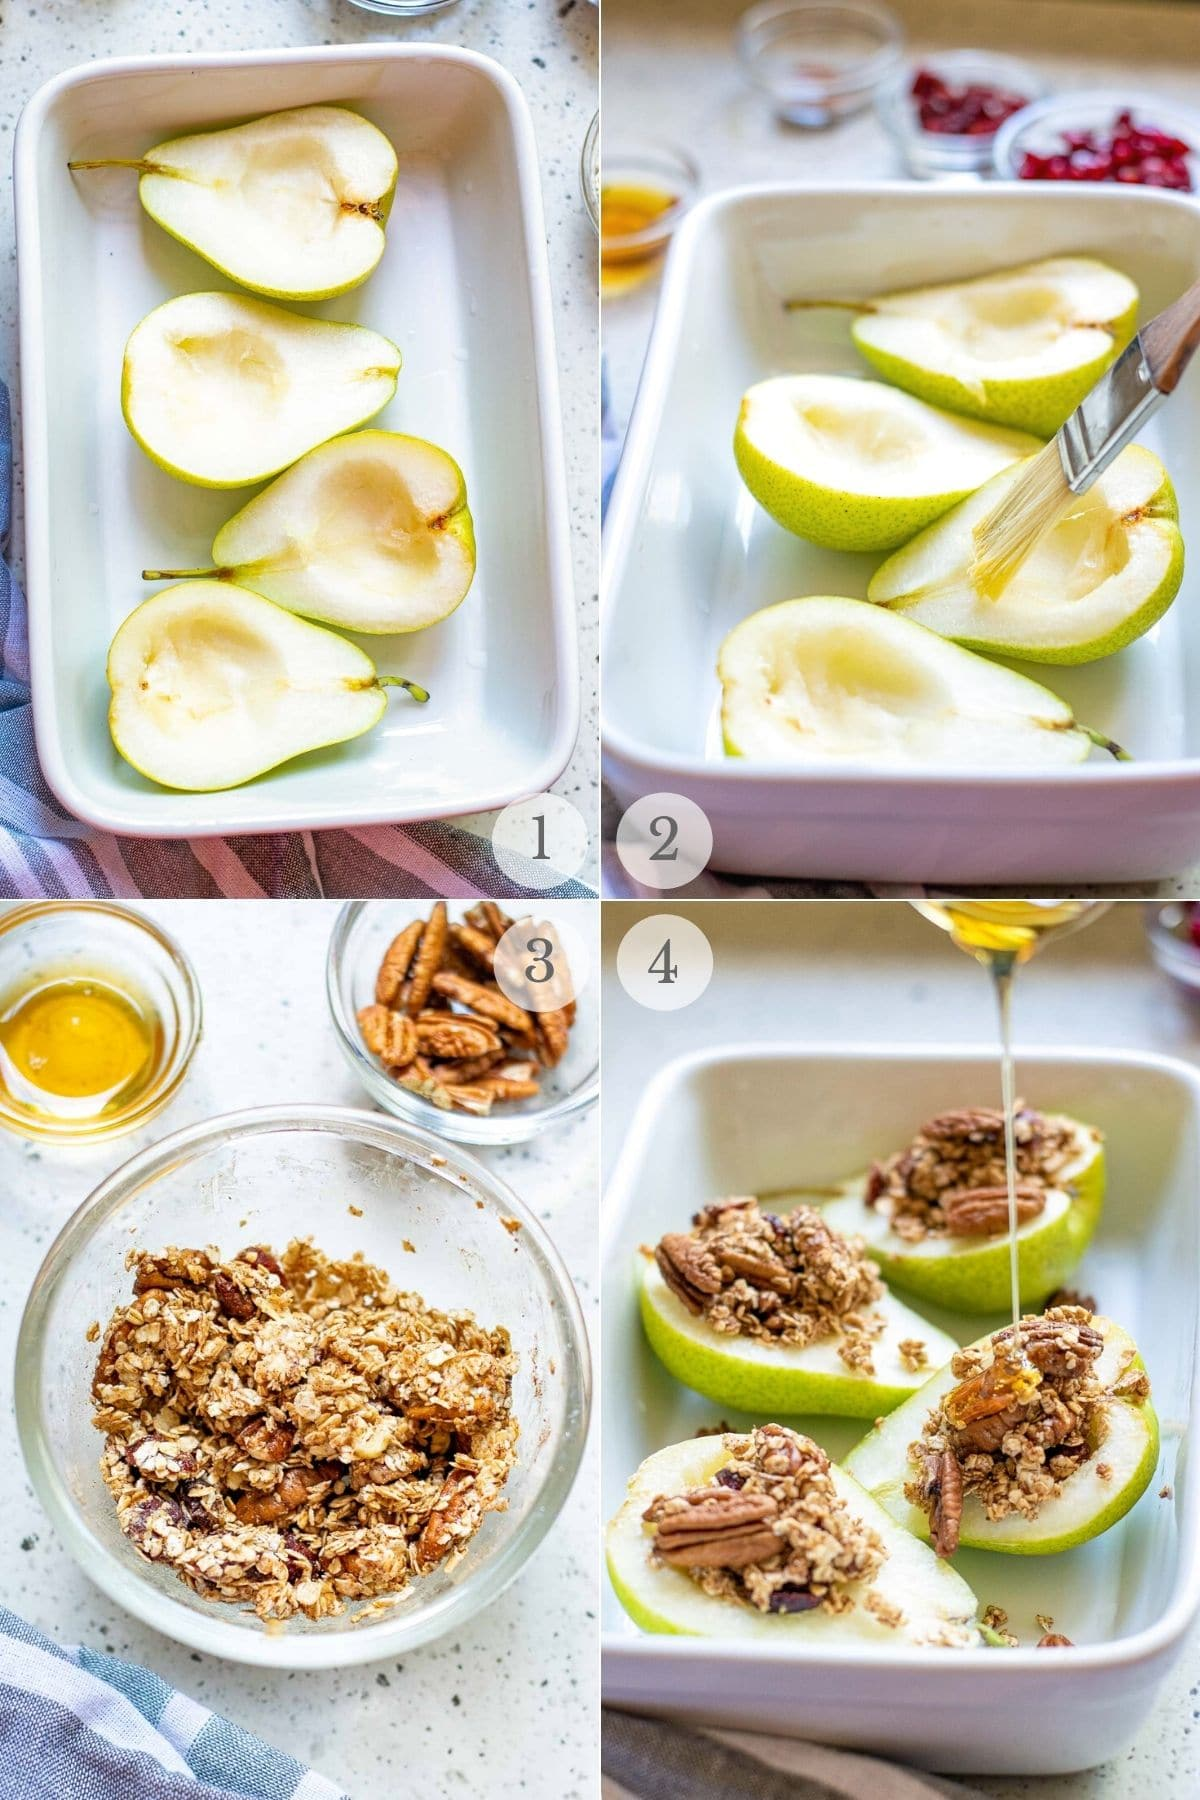 baked pears recipes 1-4 steps